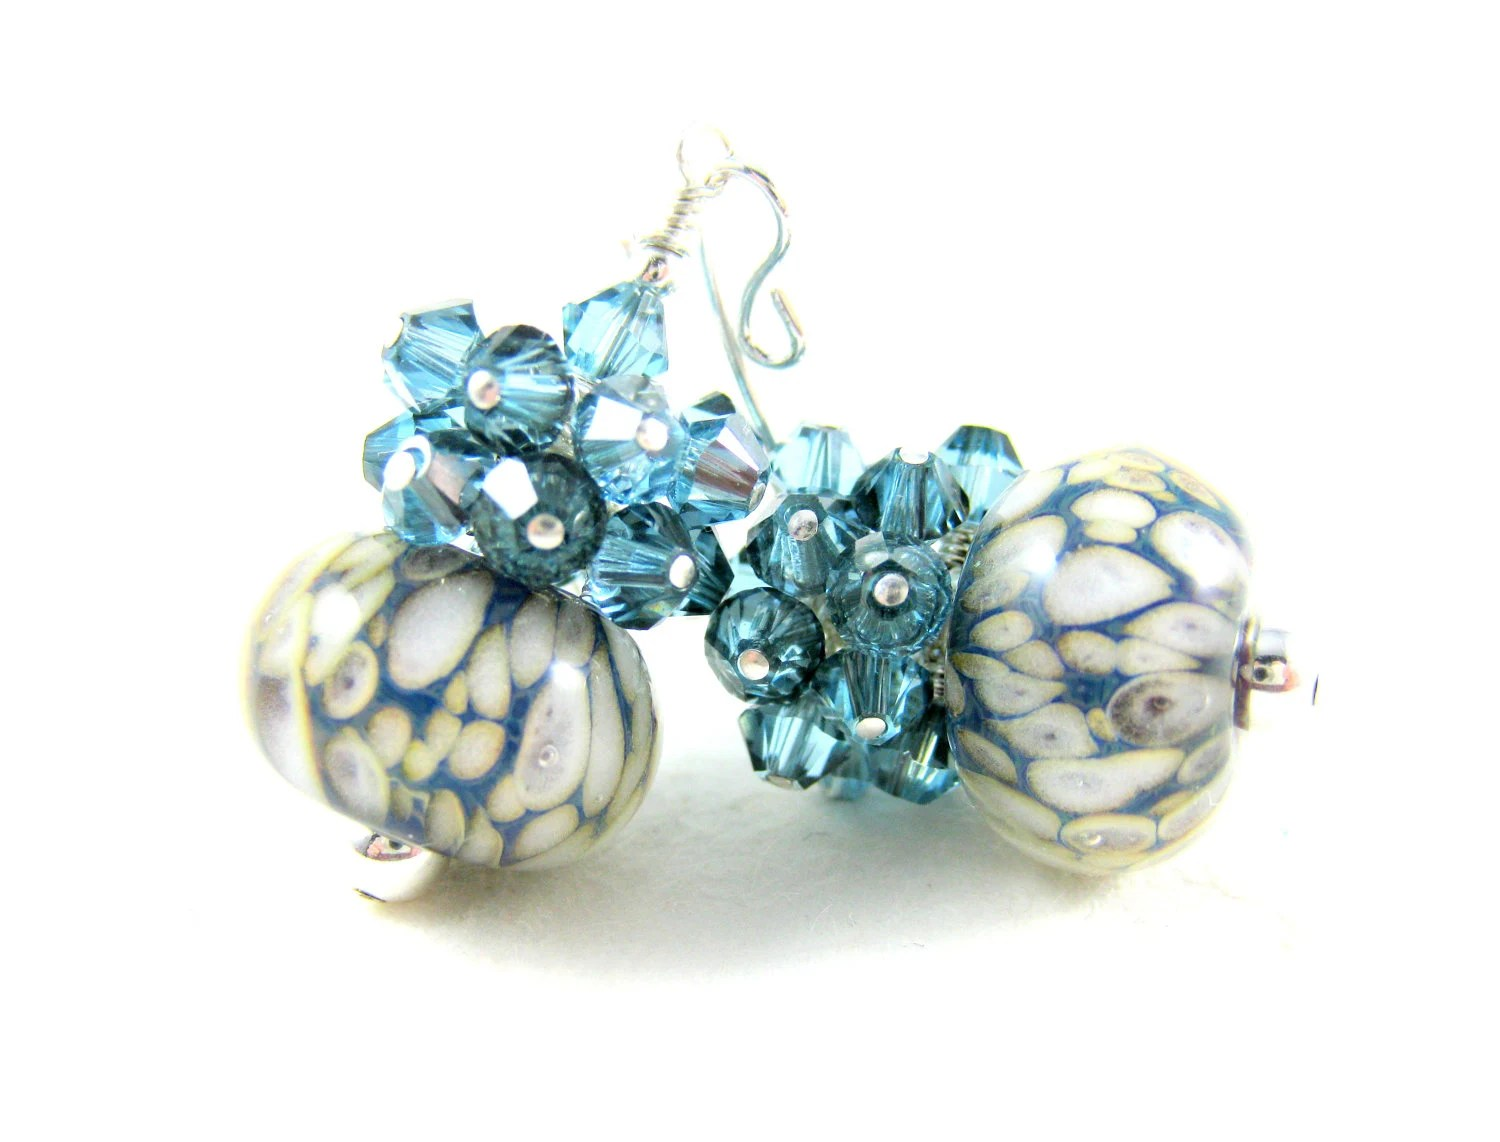 Blue White Glass Earrings, Cerulean Blue White Boro Earrings, Blue Earrings, Lampwork Earrings - Snow & Ice - GlassRiverJewelry